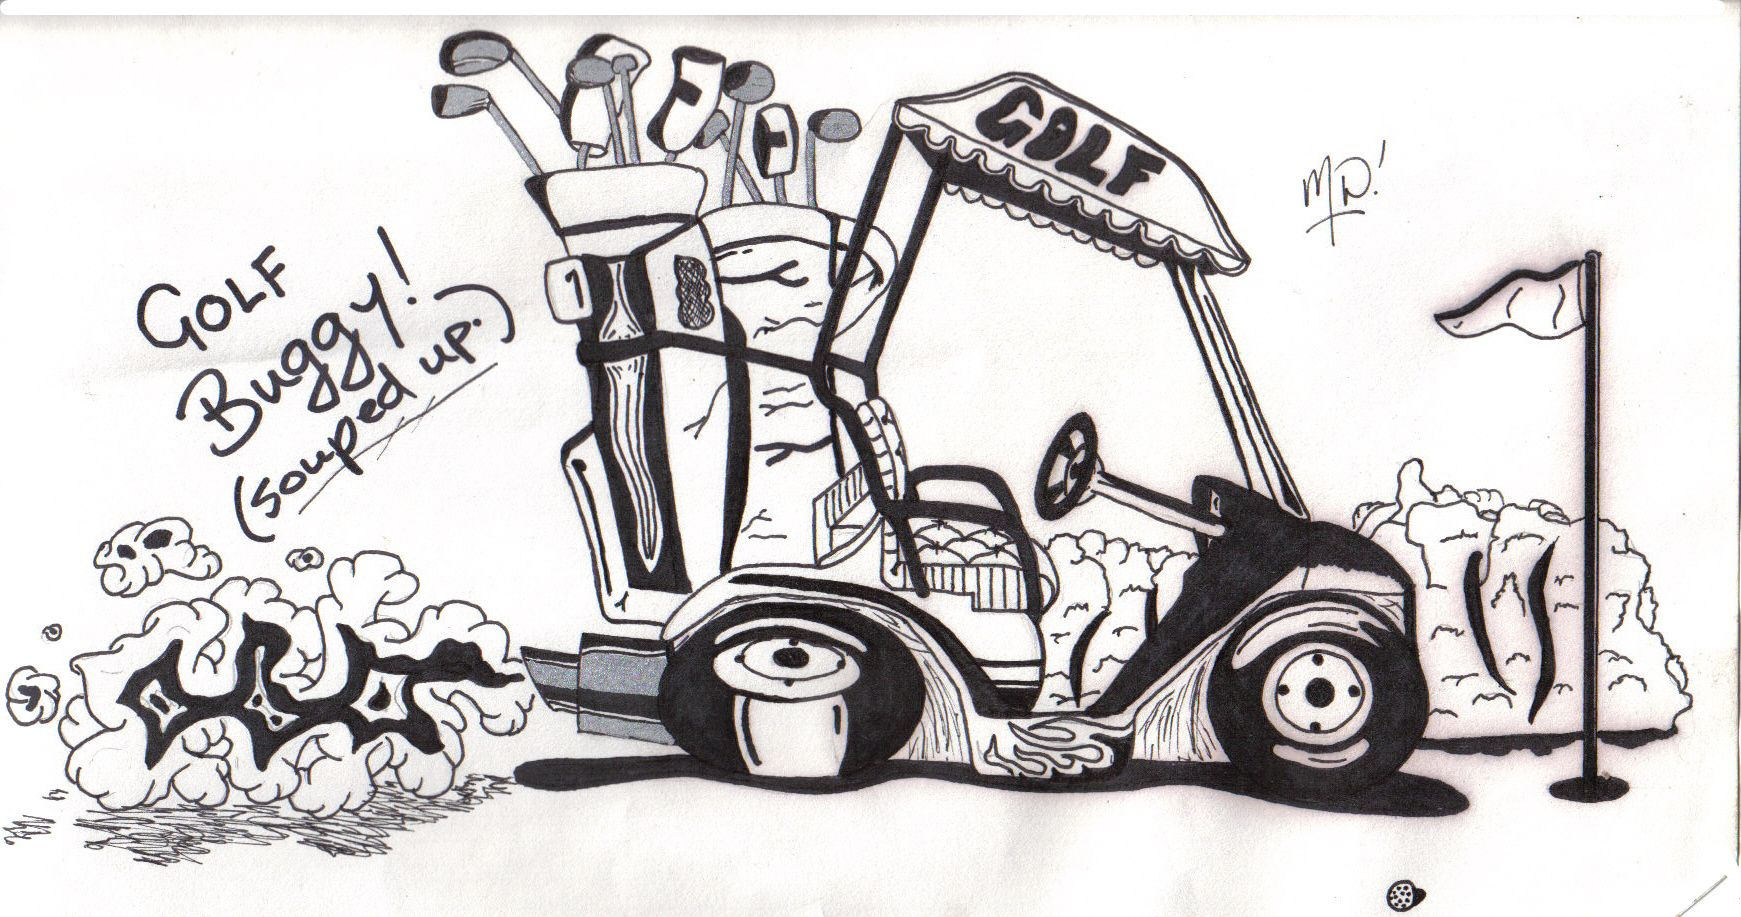 My Dad S Mom Had A Golf Cart That Looked Like A Car So I Want Something Like That For A Tattoo